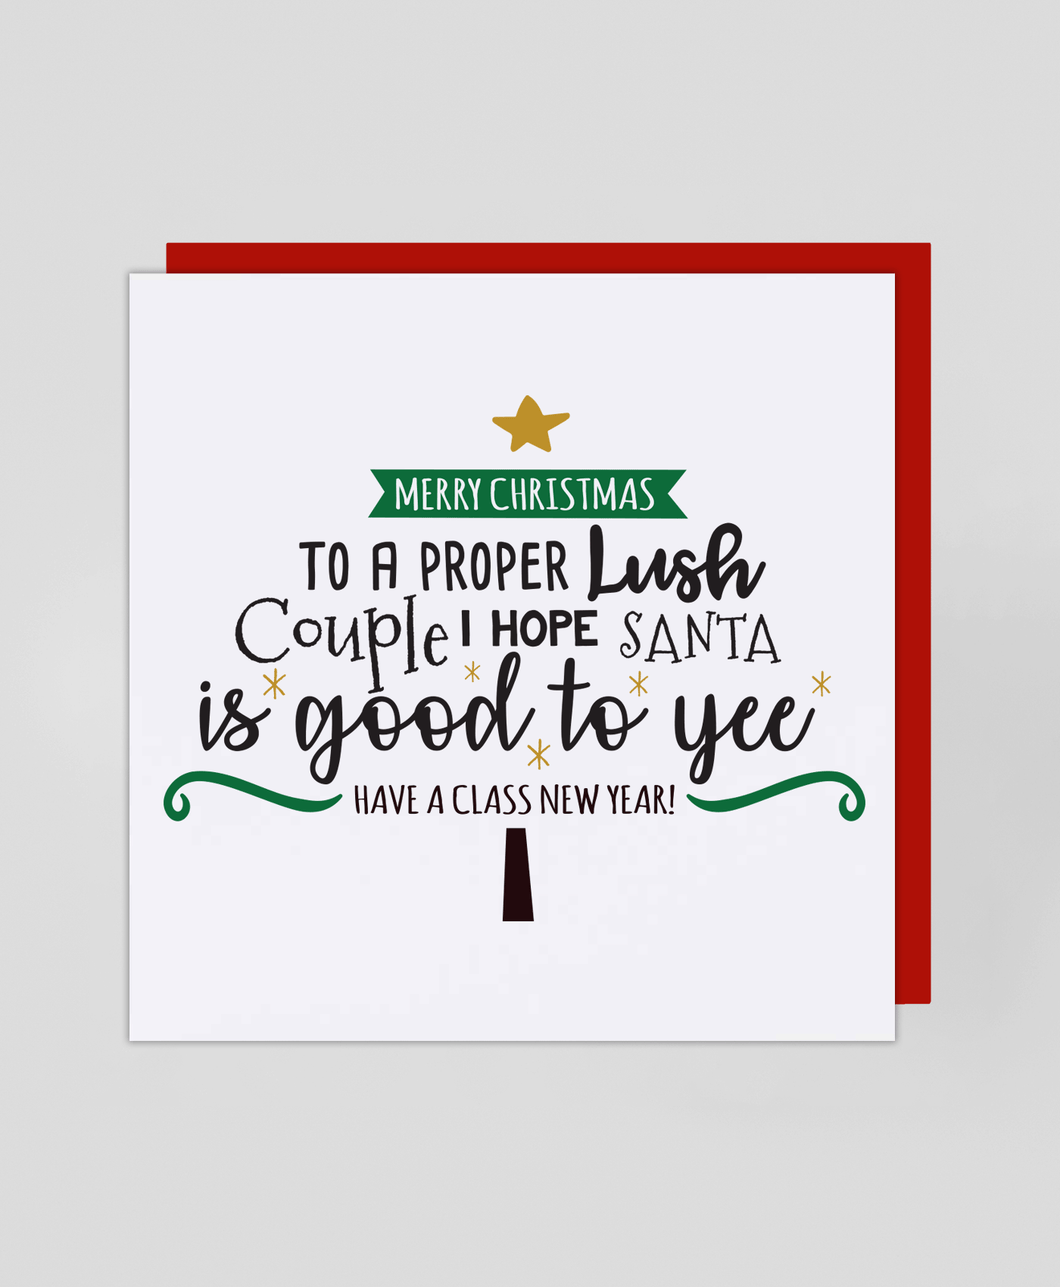 Lush Couple - Christmas Card